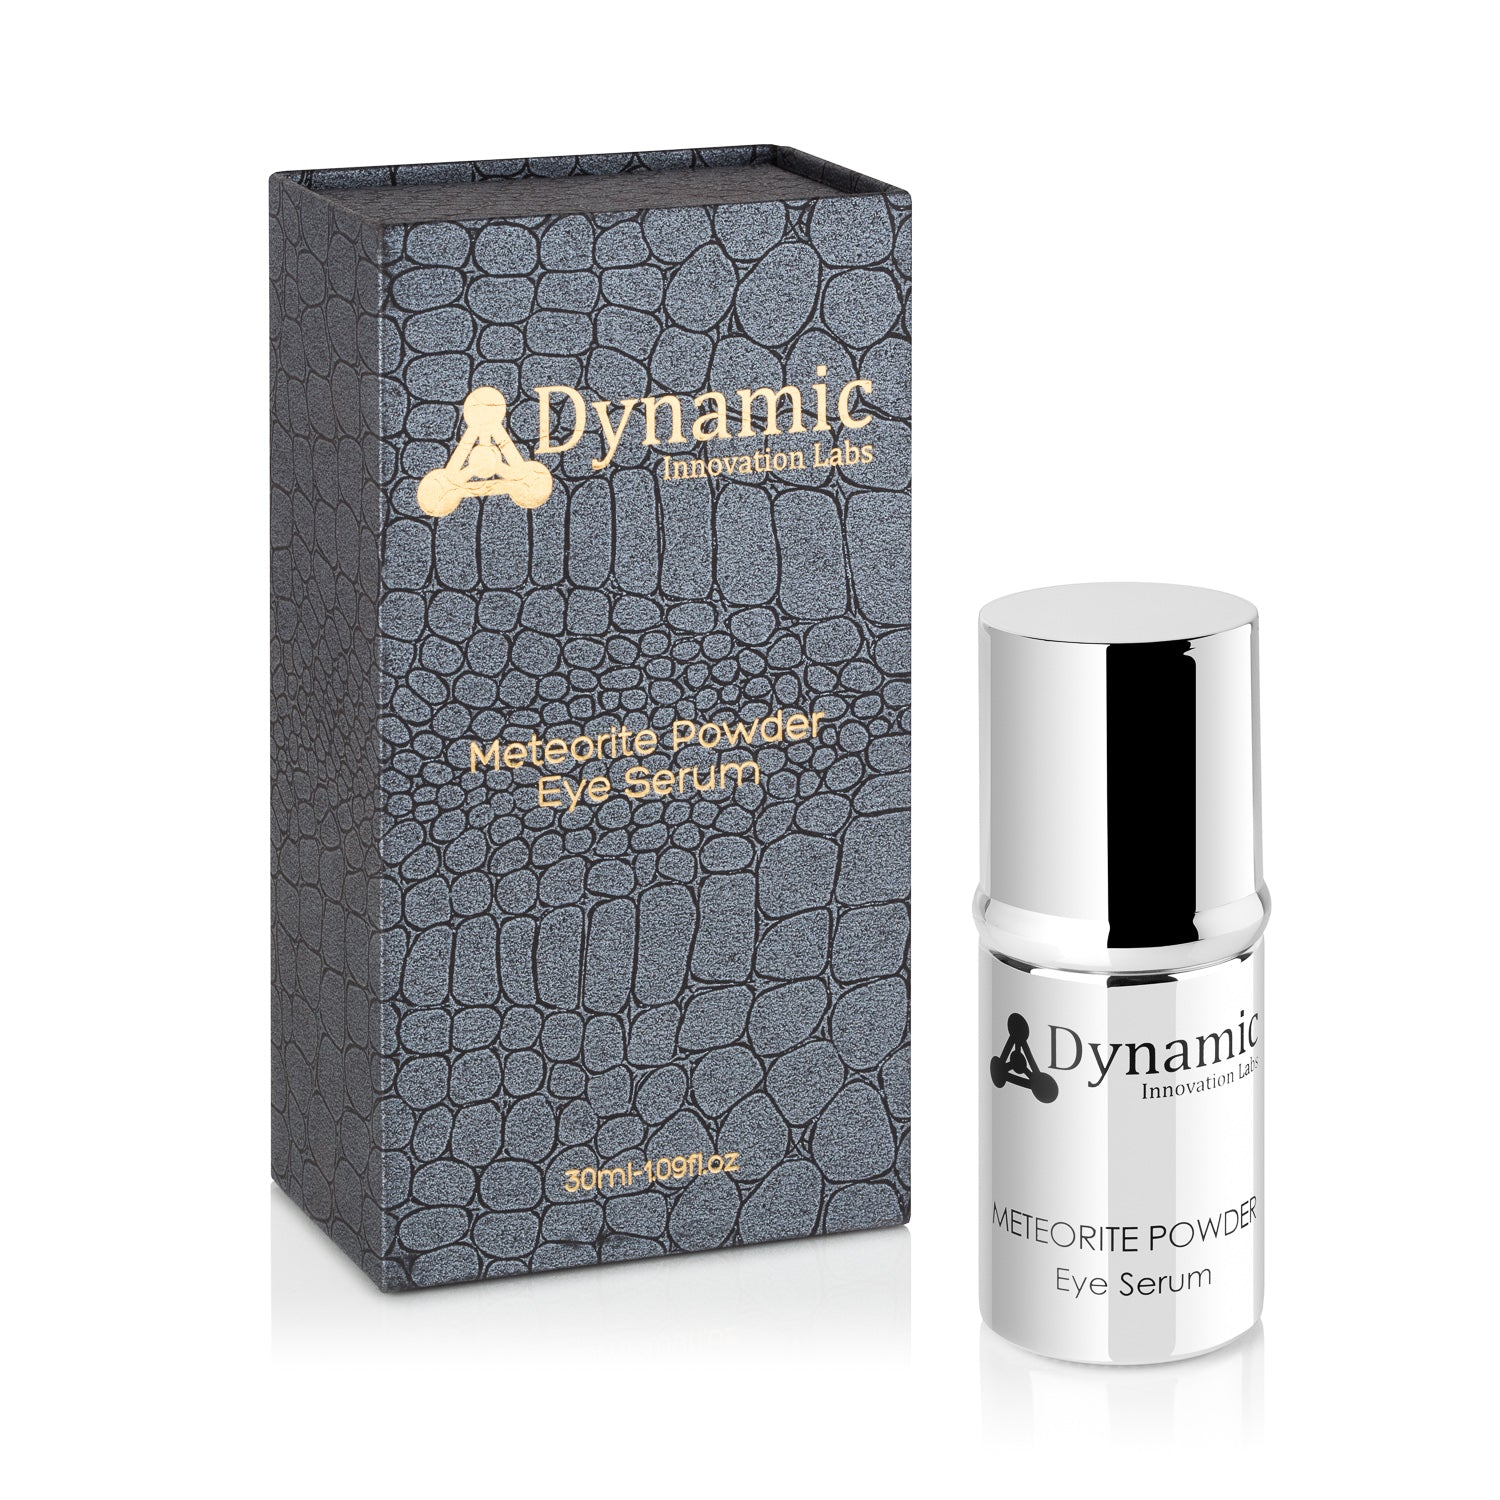 DYNAMIC INNOVATION - 24K Gold & Meteorite Powder Firming Eye Serum